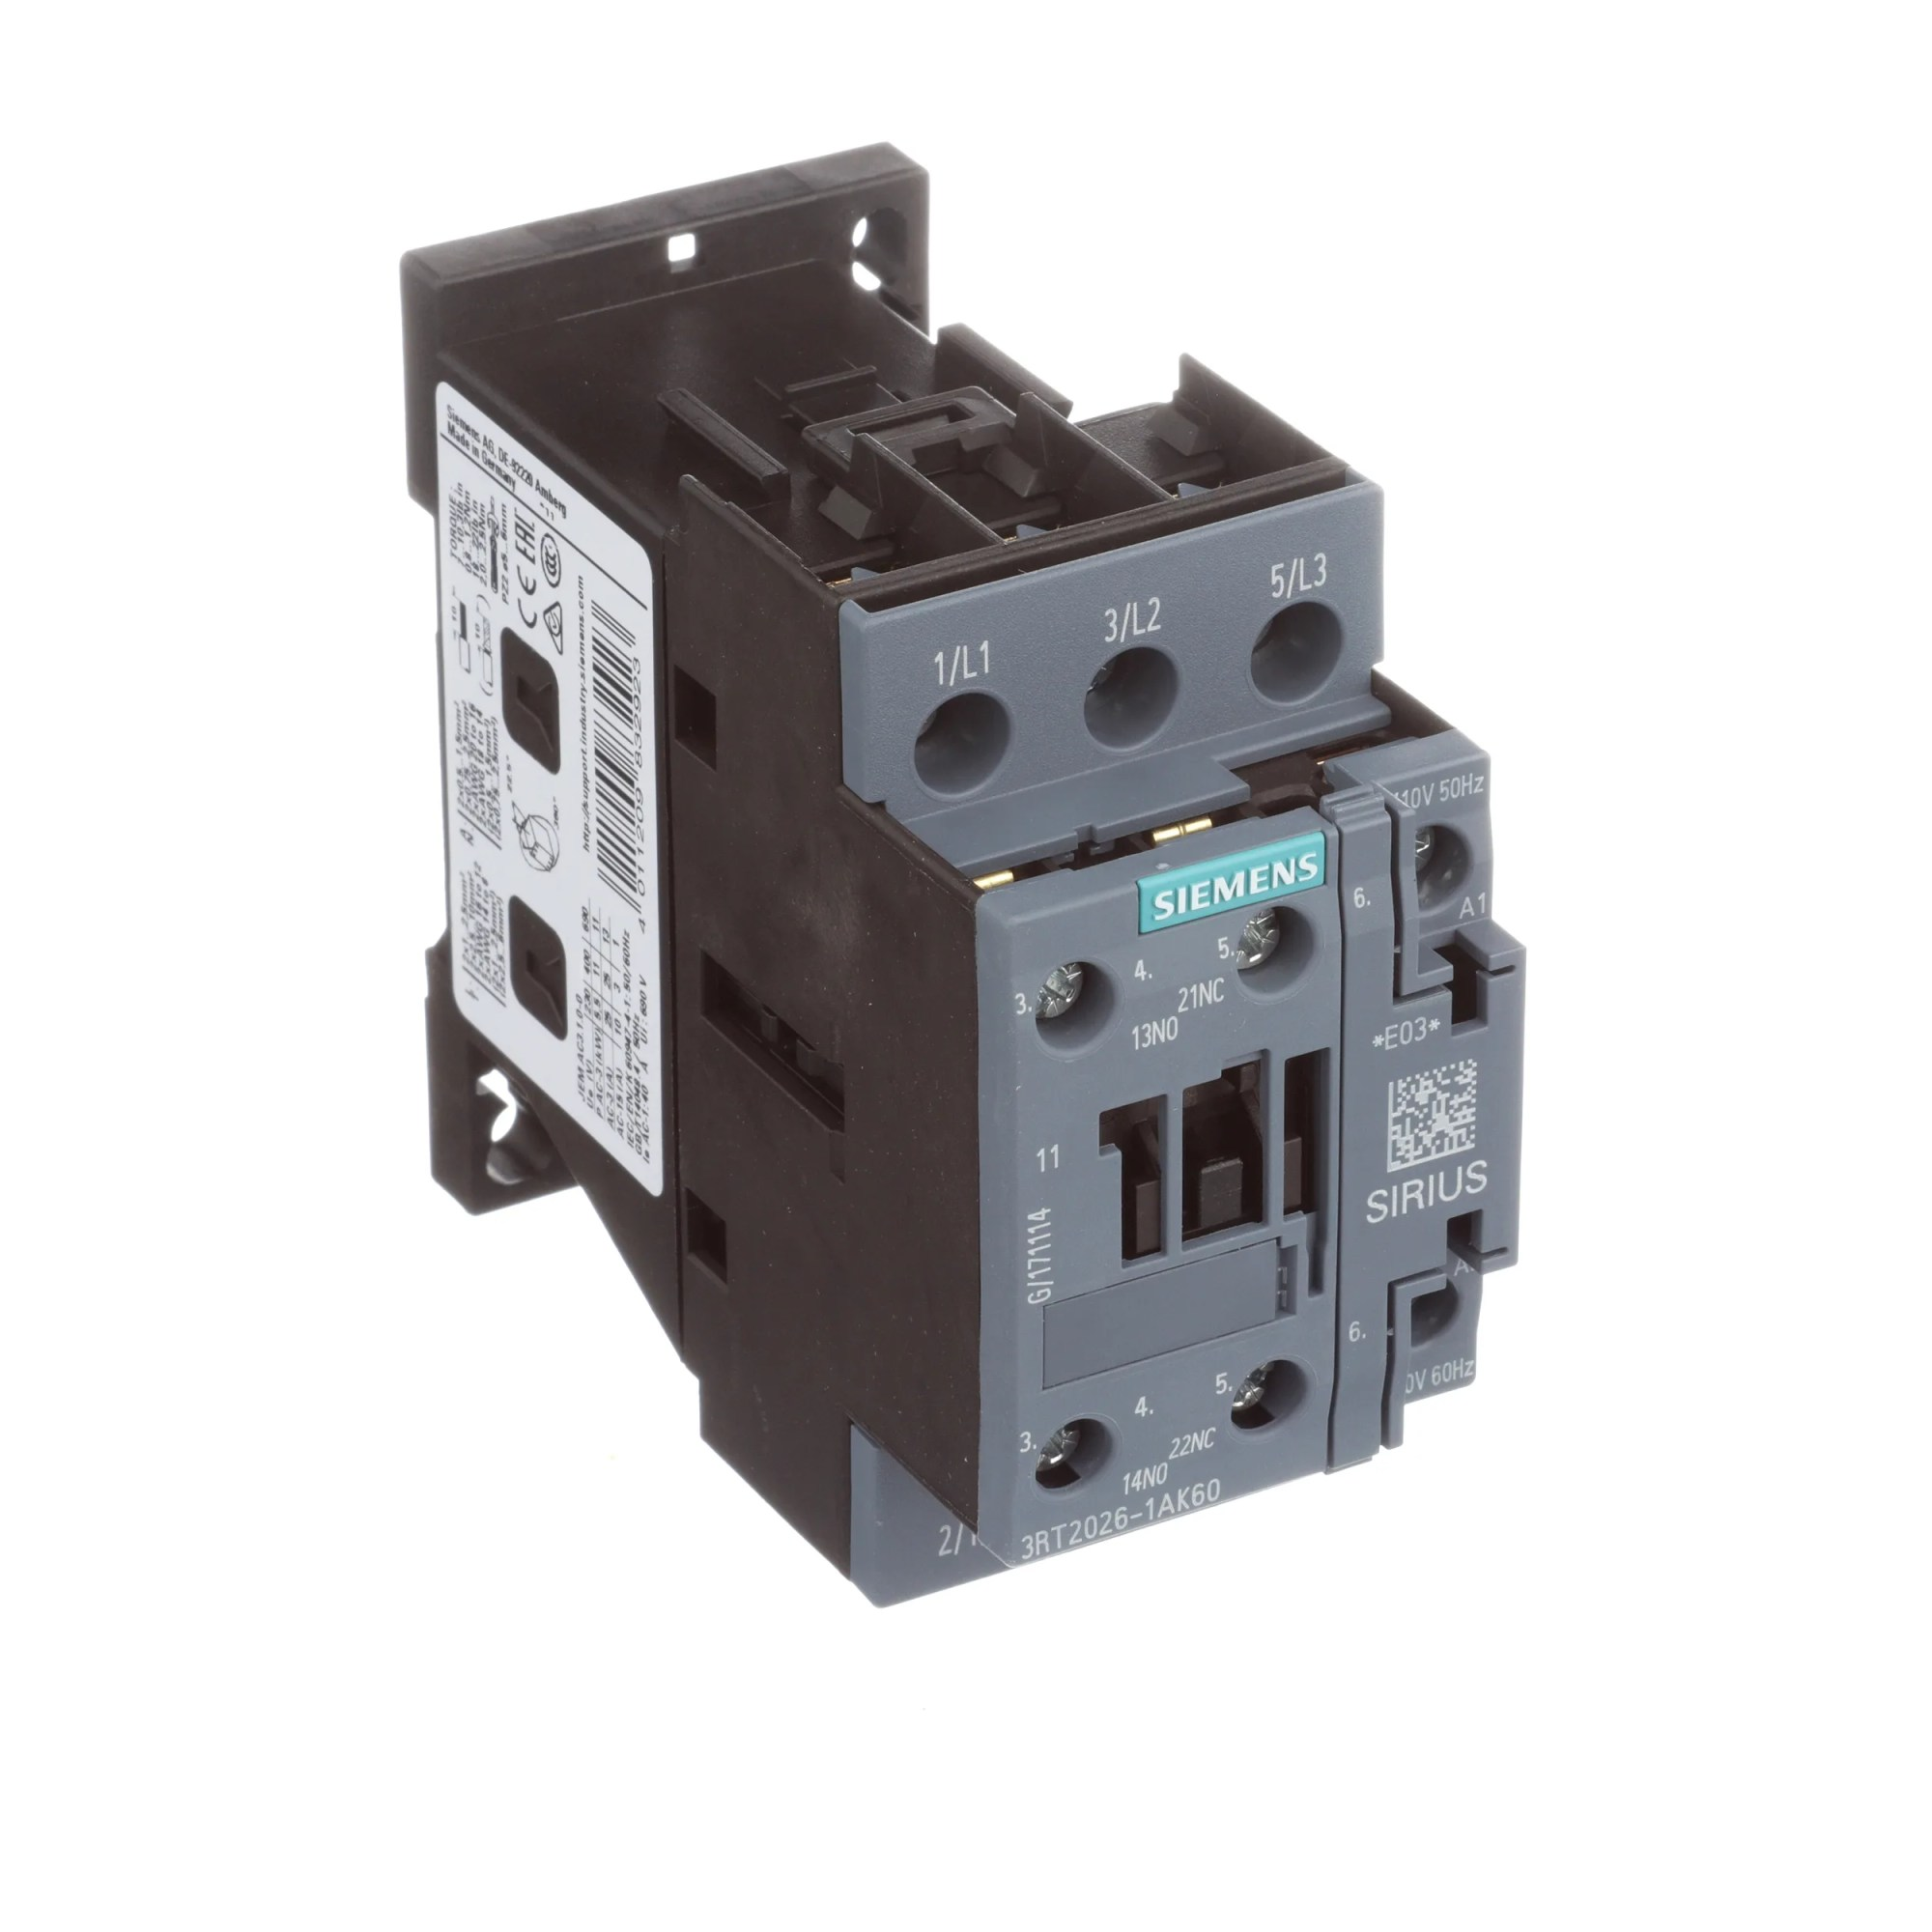 hight resolution of siemens 3rt20261ak60 sirius 3rt 3 pole contactor 25 a 11 kw 110 v ac 50 hz 120 v ac 60 hz coil allied electronics automation